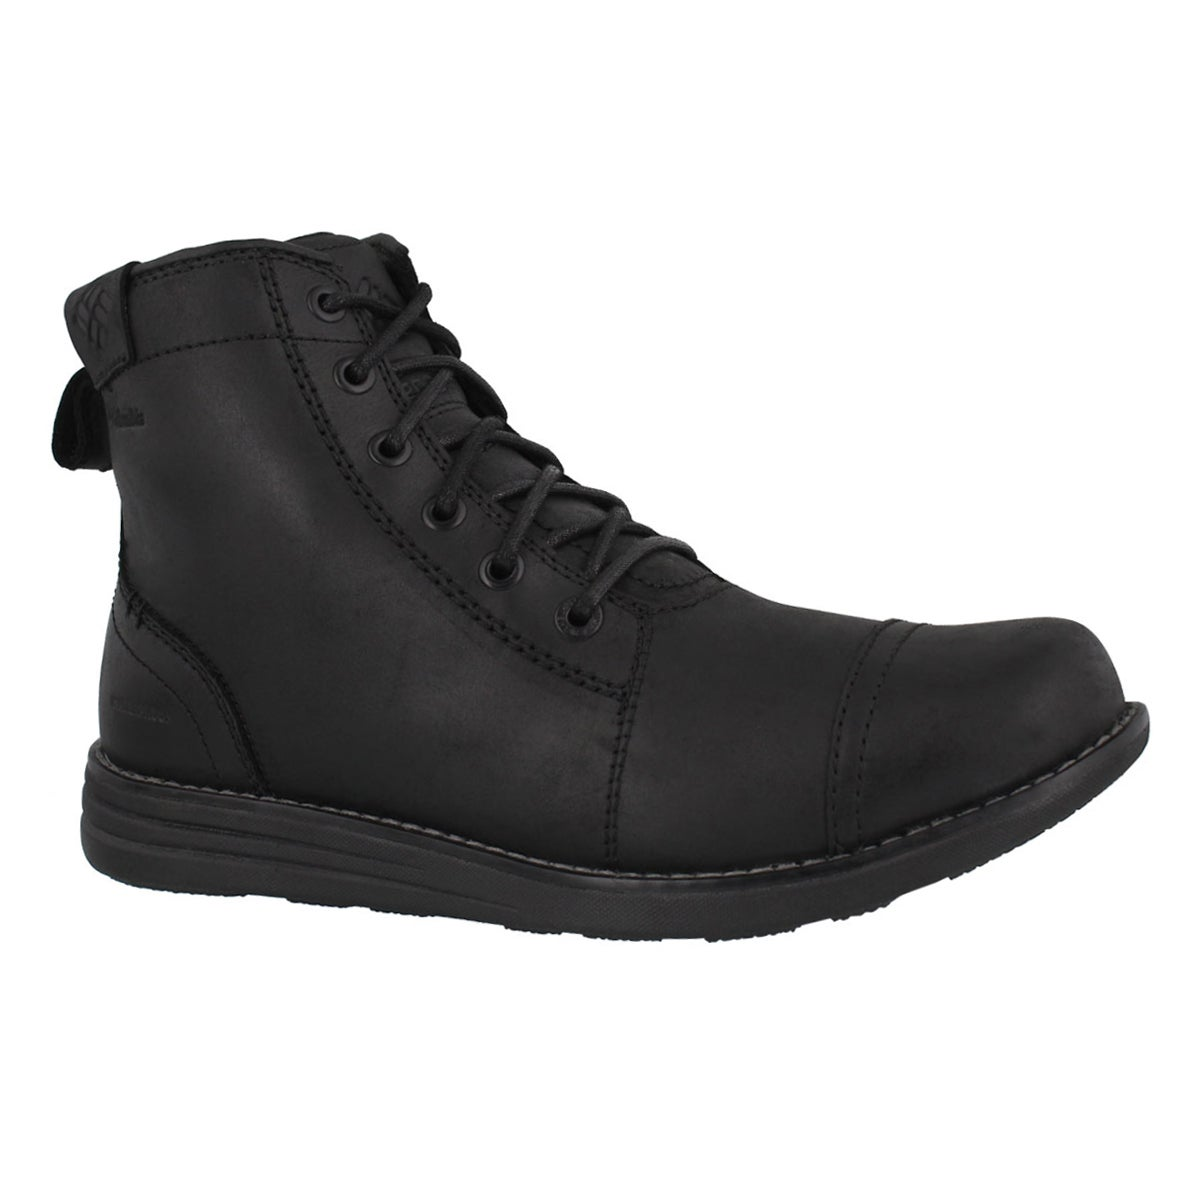 Men's IRVINGTON LTR XTM blk waterproof boots